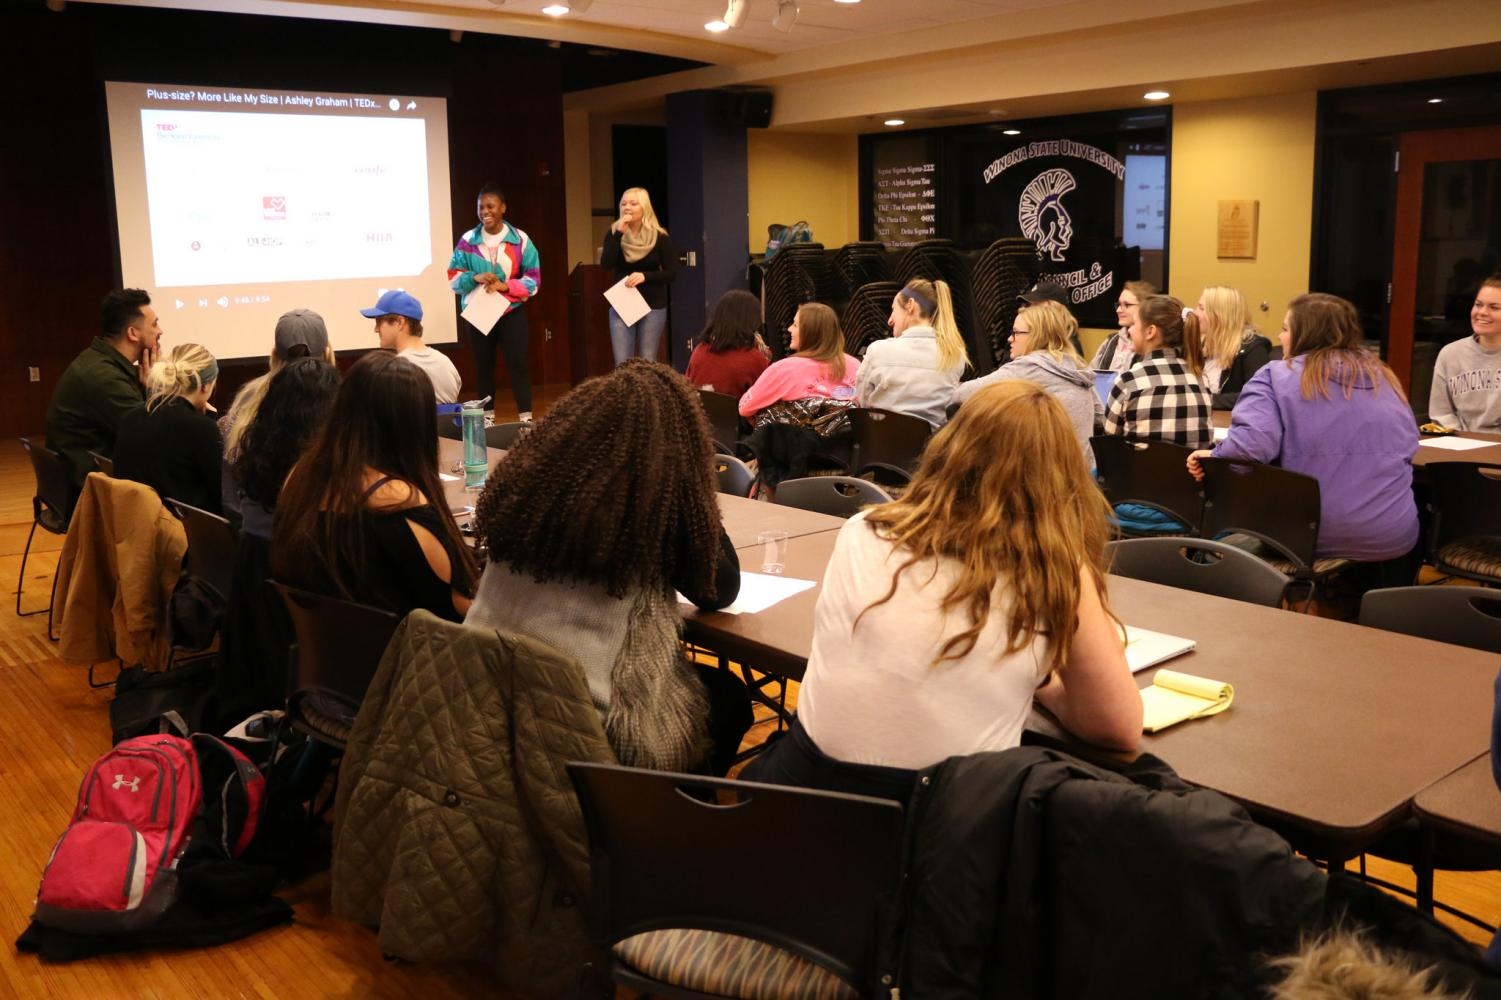 Juniors Angel Tarwoe and Hallie Riedel co-facilitated a discussion following the viewing of Ashley Graham's TED Talk on body image on Tuesday, Oct. 31. The event was part of Winona State University's monthly TED Talk Tuesday series.